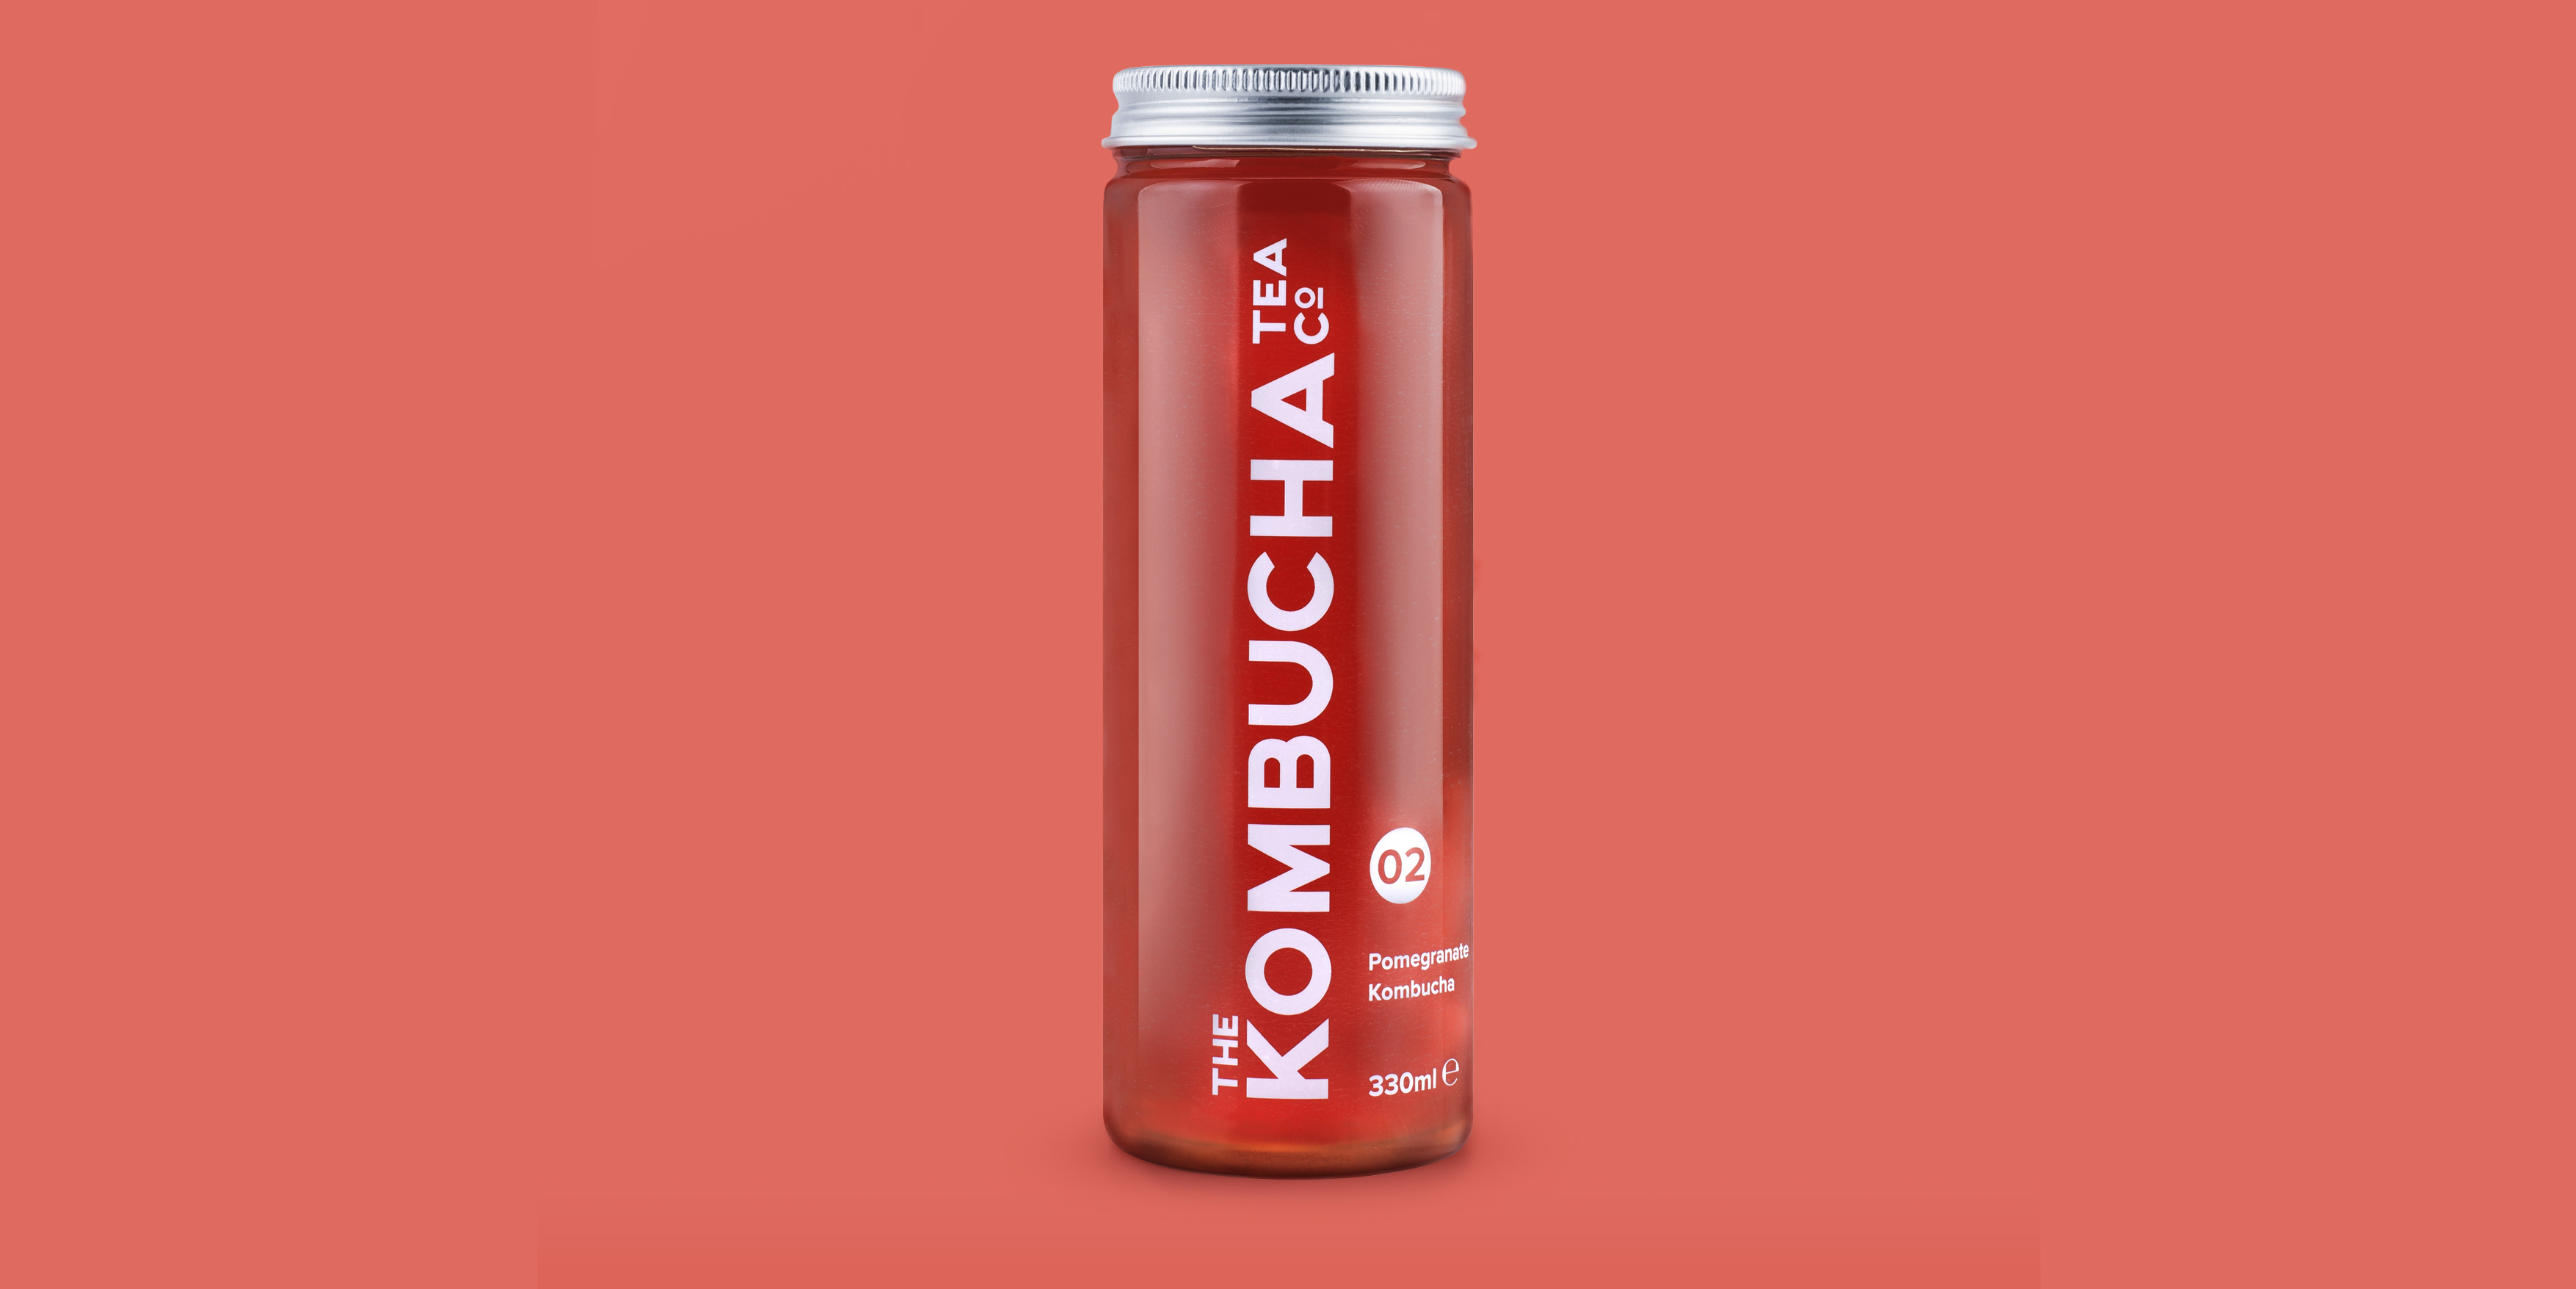 The Kombucha Tea Company Pomengranatel Flavour Branding and Packaging by Toast Food